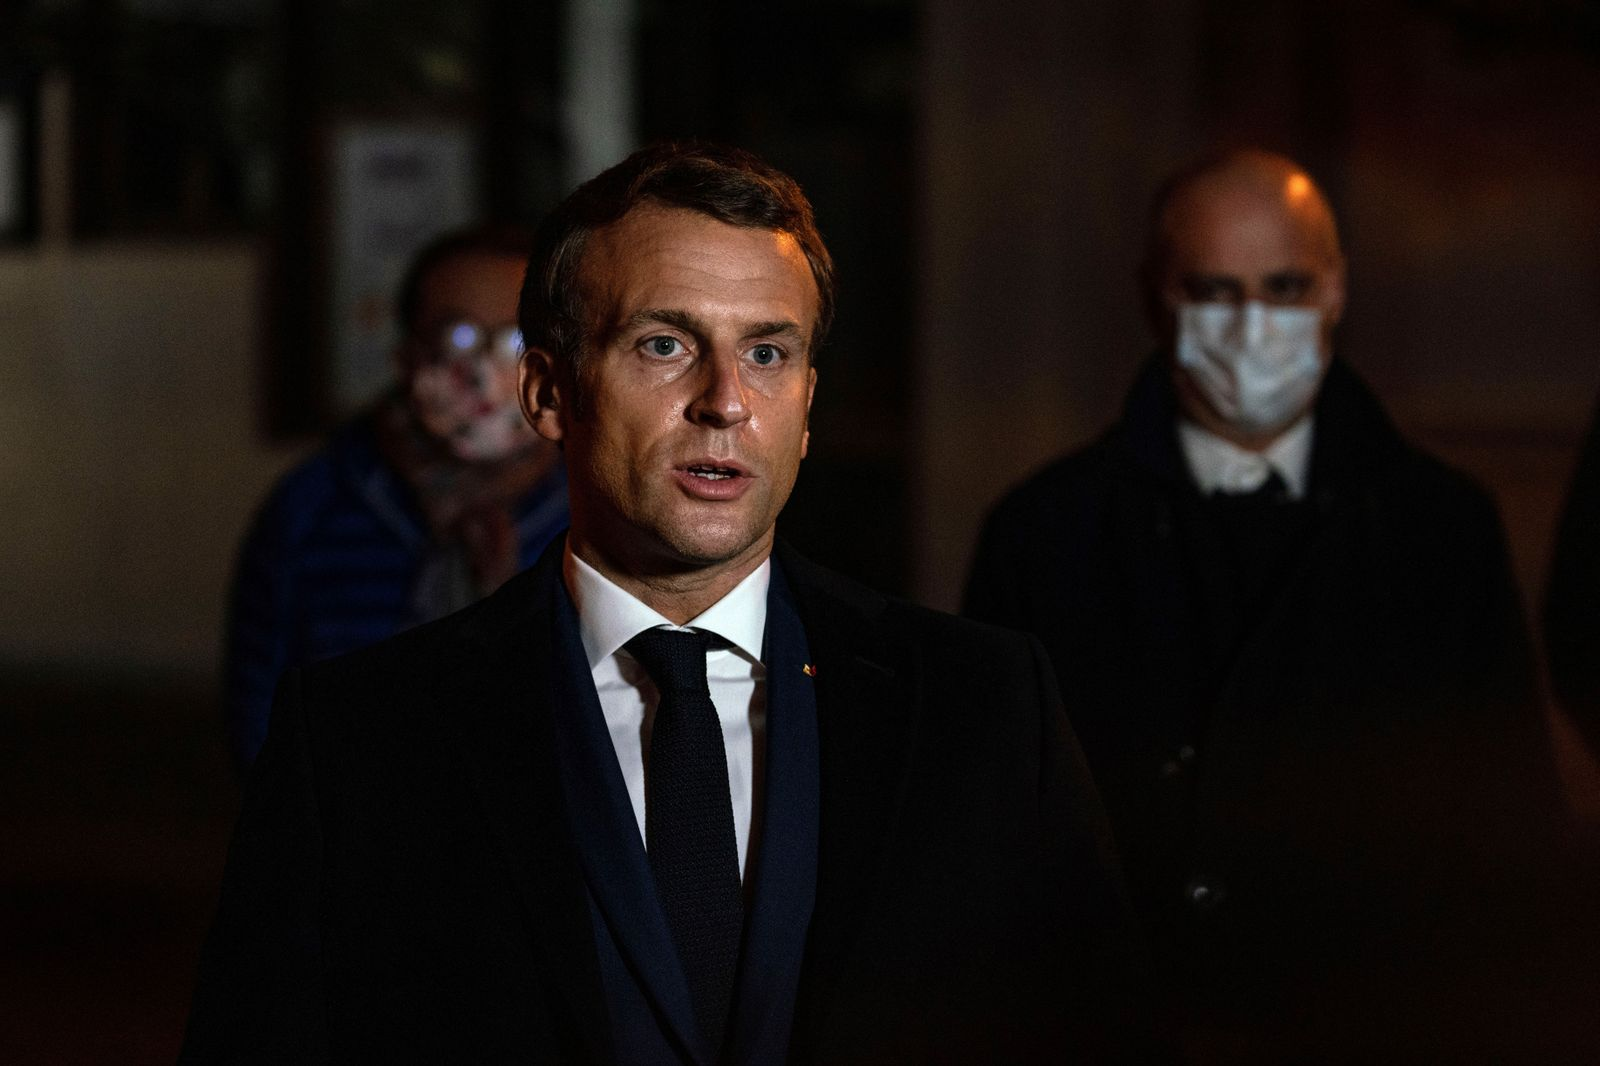 French President Emmanuel Macron visit following attack in which teacher was decapitated, Eragny, France - 16 Oct 2020